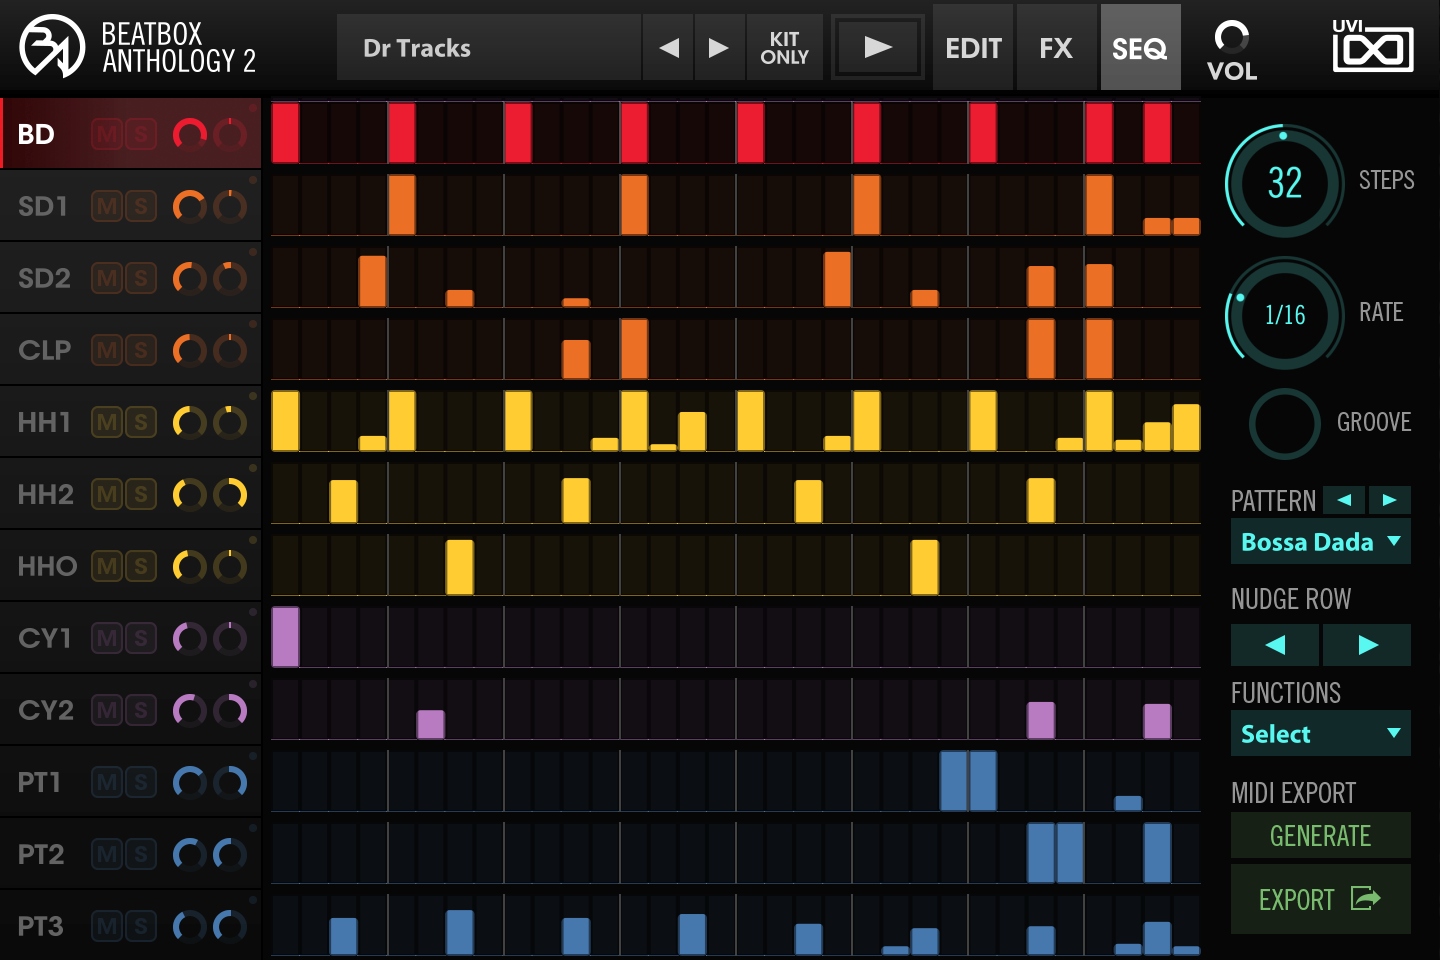 BeatBox Anthology 2 - SEQ GUI